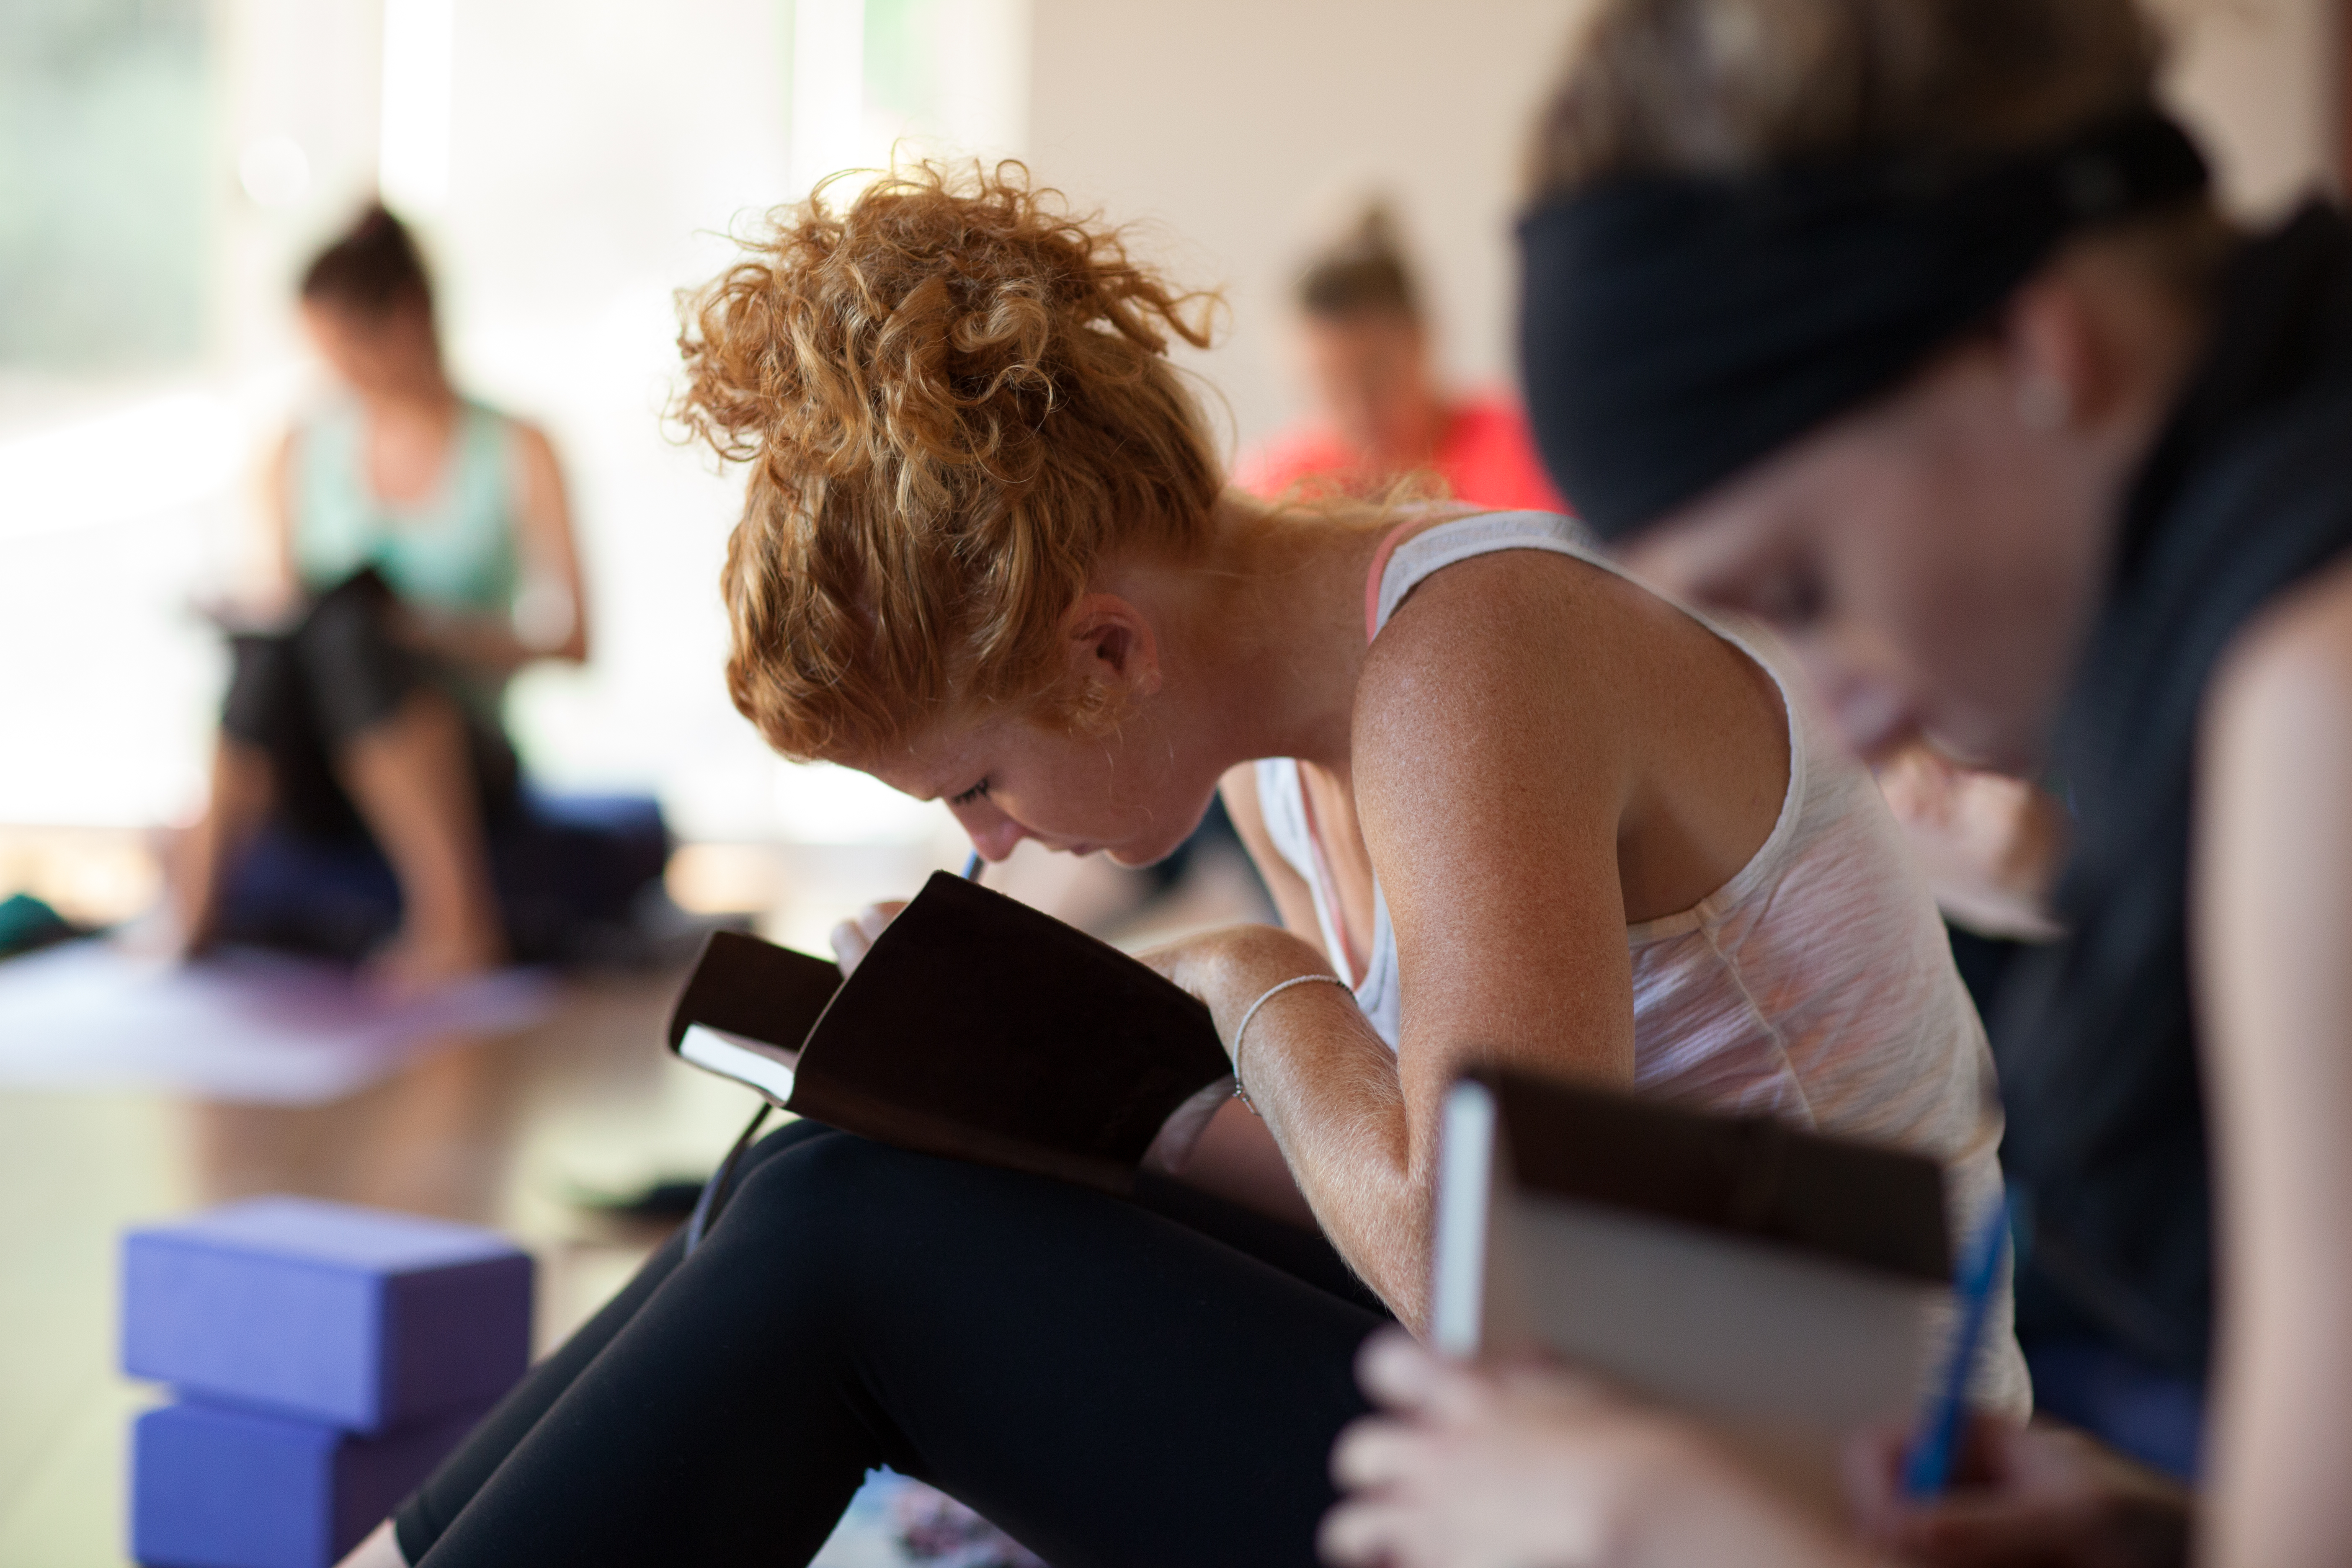 Rock Your Bliss, Founded By Two Of The Nations Best Yoga Teachers And  Transformational Life Coaches, Mary Beth LaRue (Based In LA) And Jacki Carr  (Based In ...